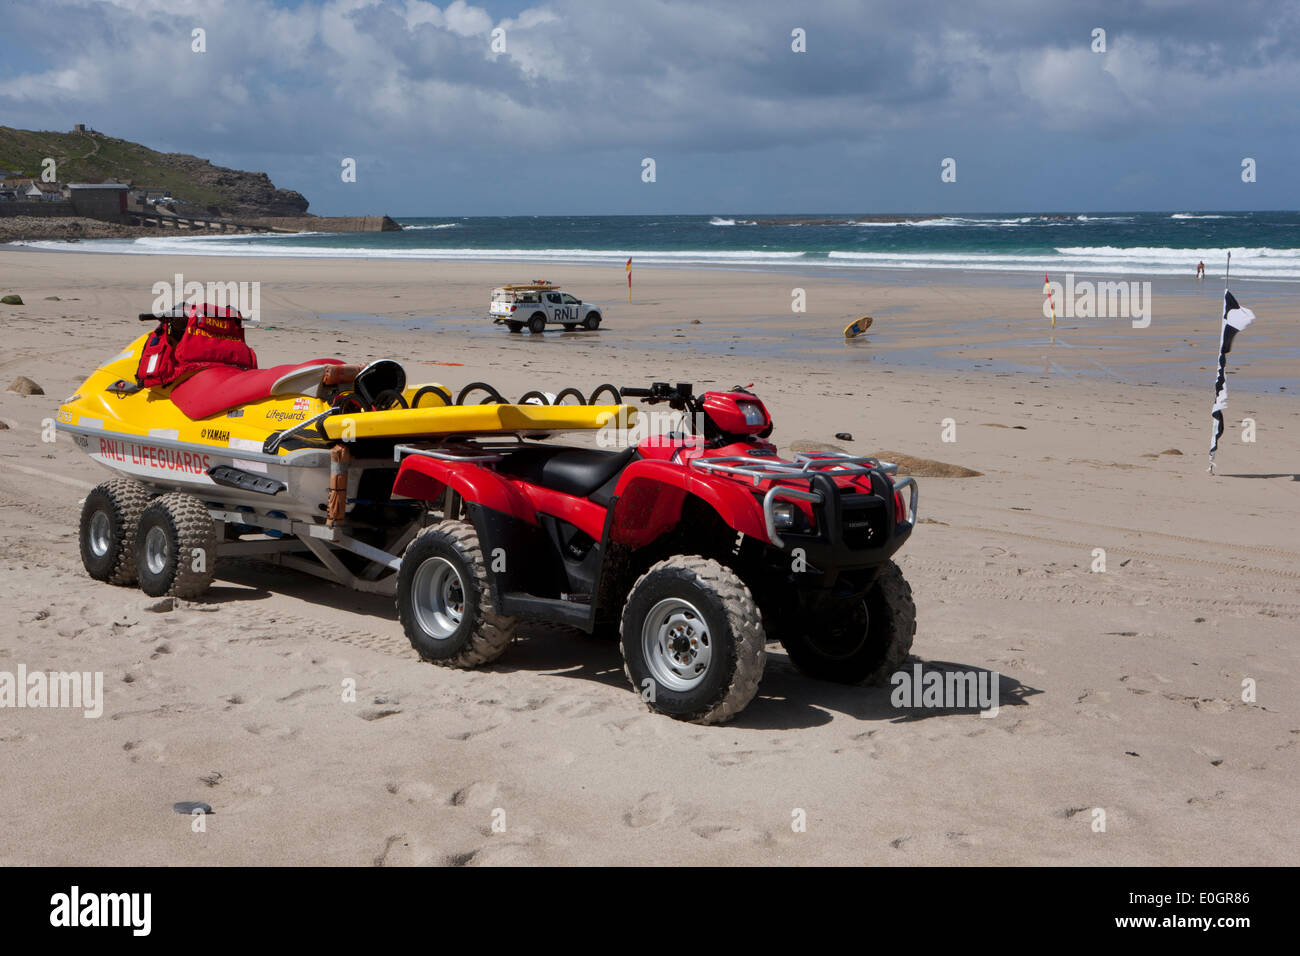 an rnli lifeguard 39 s quad bike and jet ski pwc rescue craft and a stock photo royalty free image. Black Bedroom Furniture Sets. Home Design Ideas